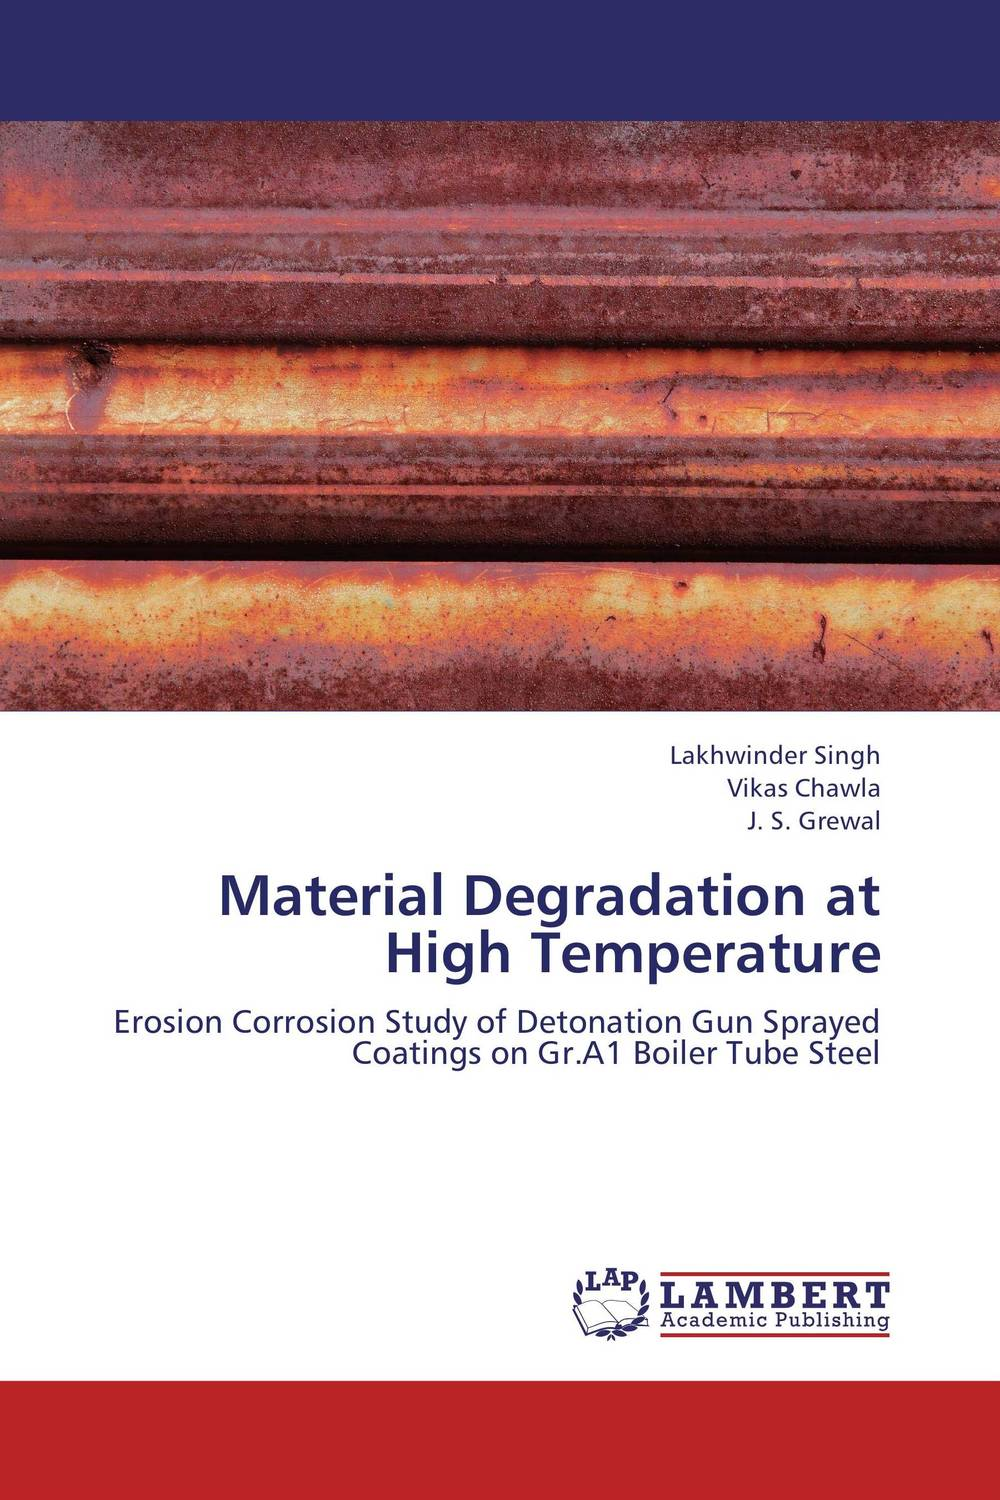 Material Degradation at High Temperature